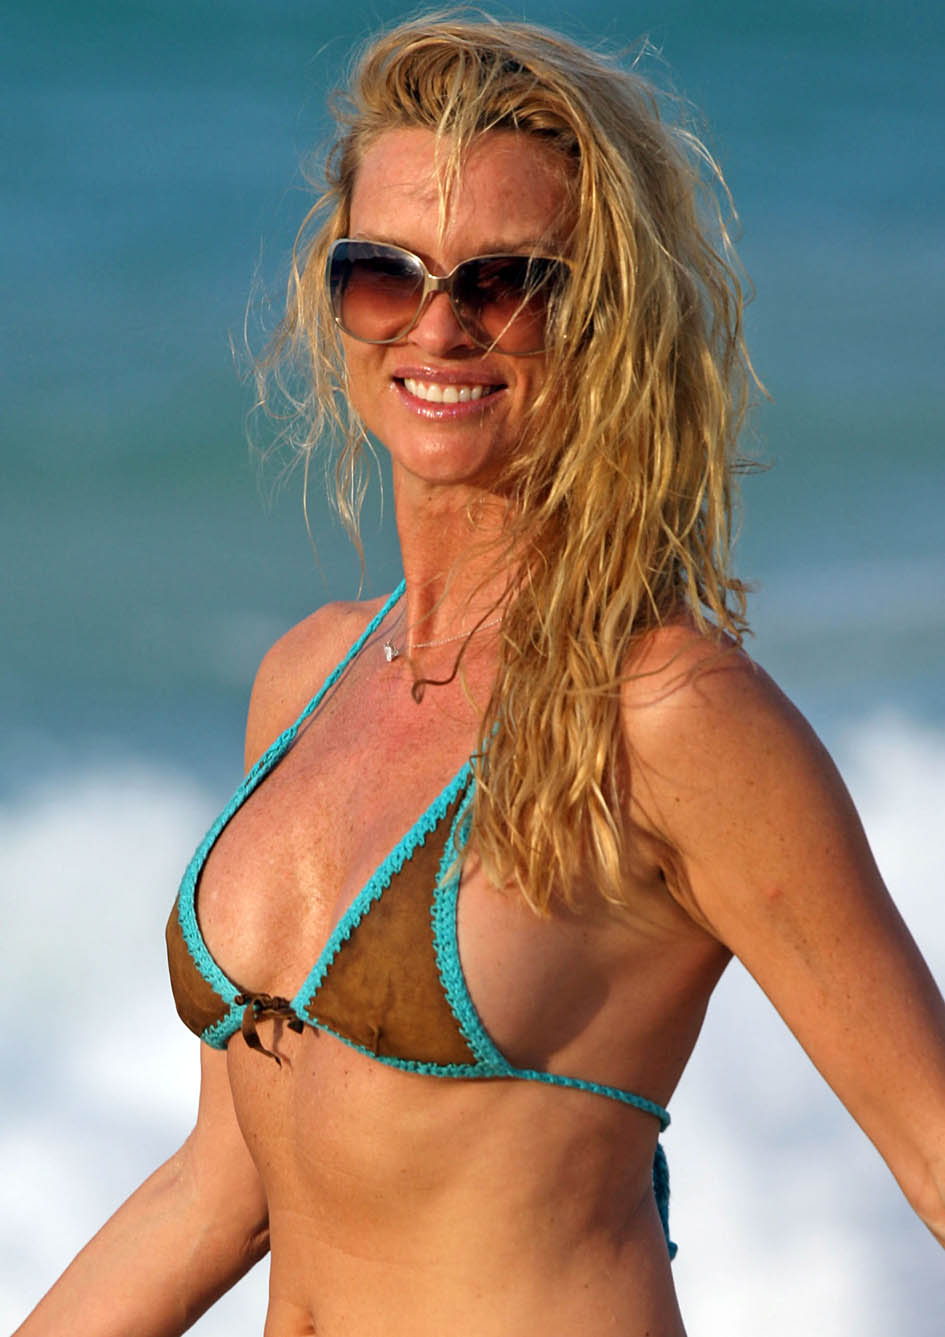 Hot Nicolette Sheridan nude photos 2019